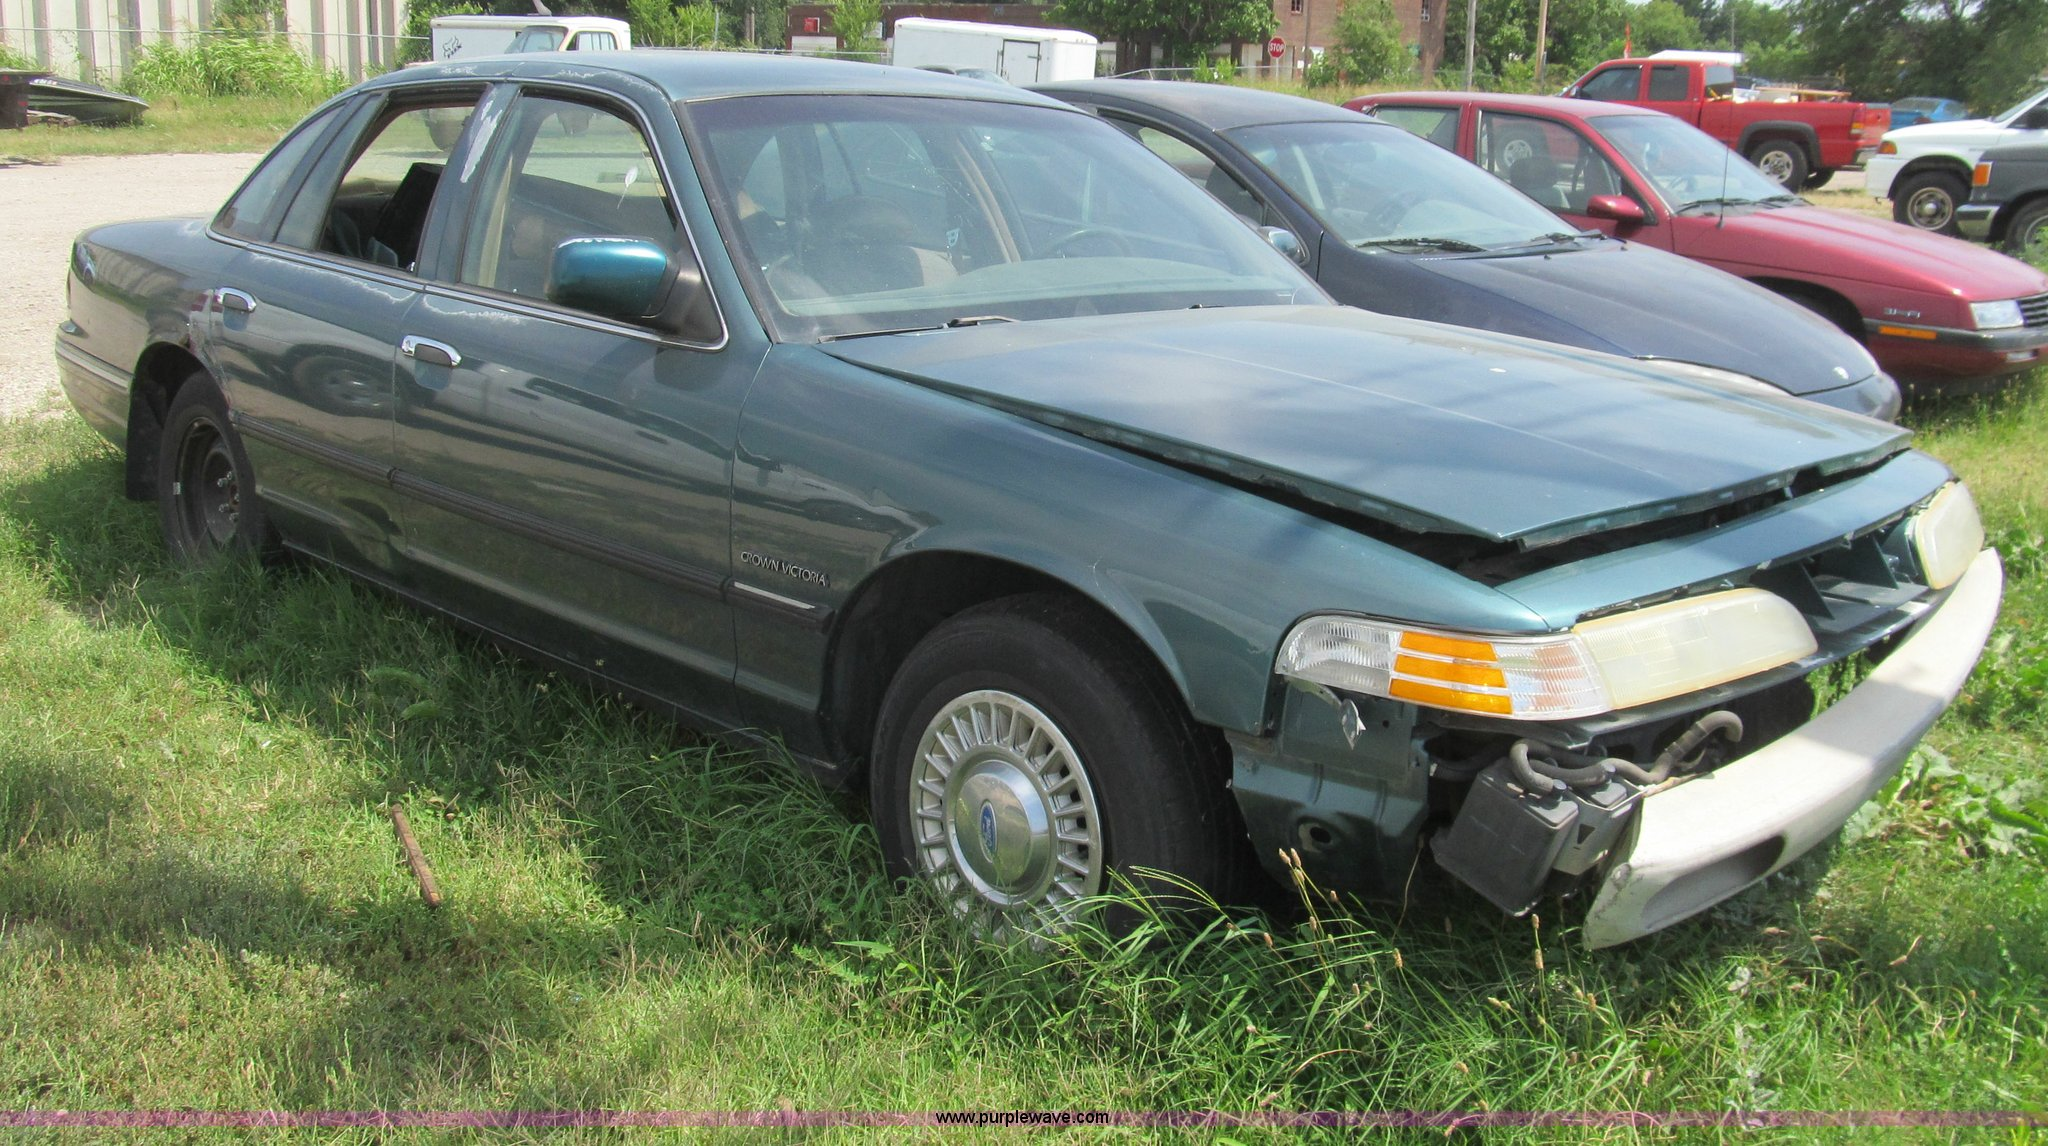 1995 Ford Crown Victoria Police Interceptor Item H8900 S Image For